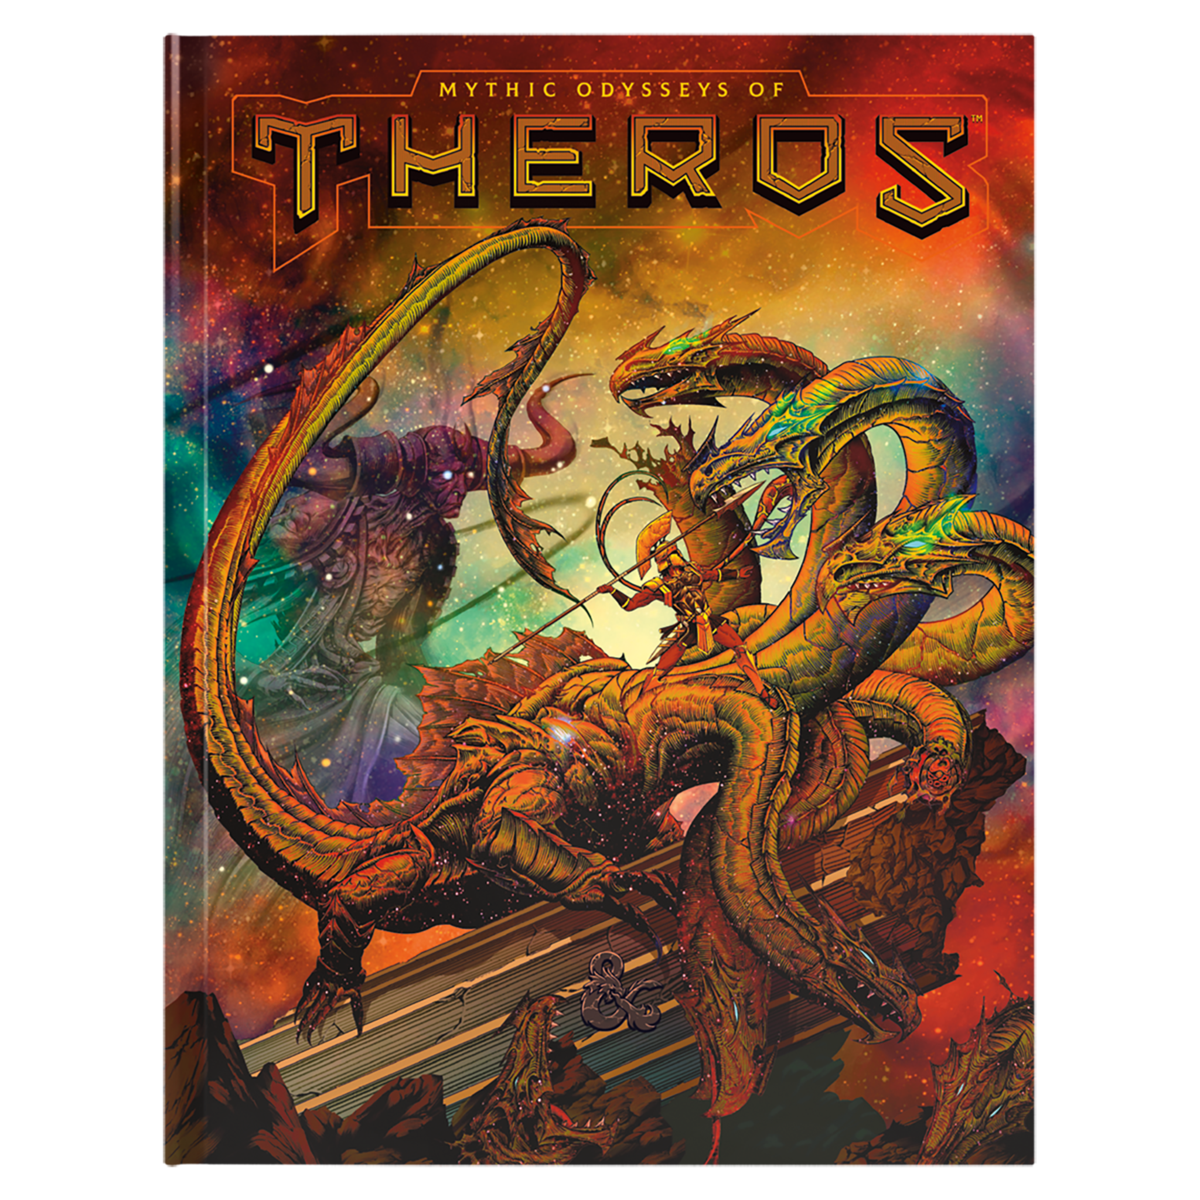 D&D Mythic Odysseys of Theros (Alternate Cover)